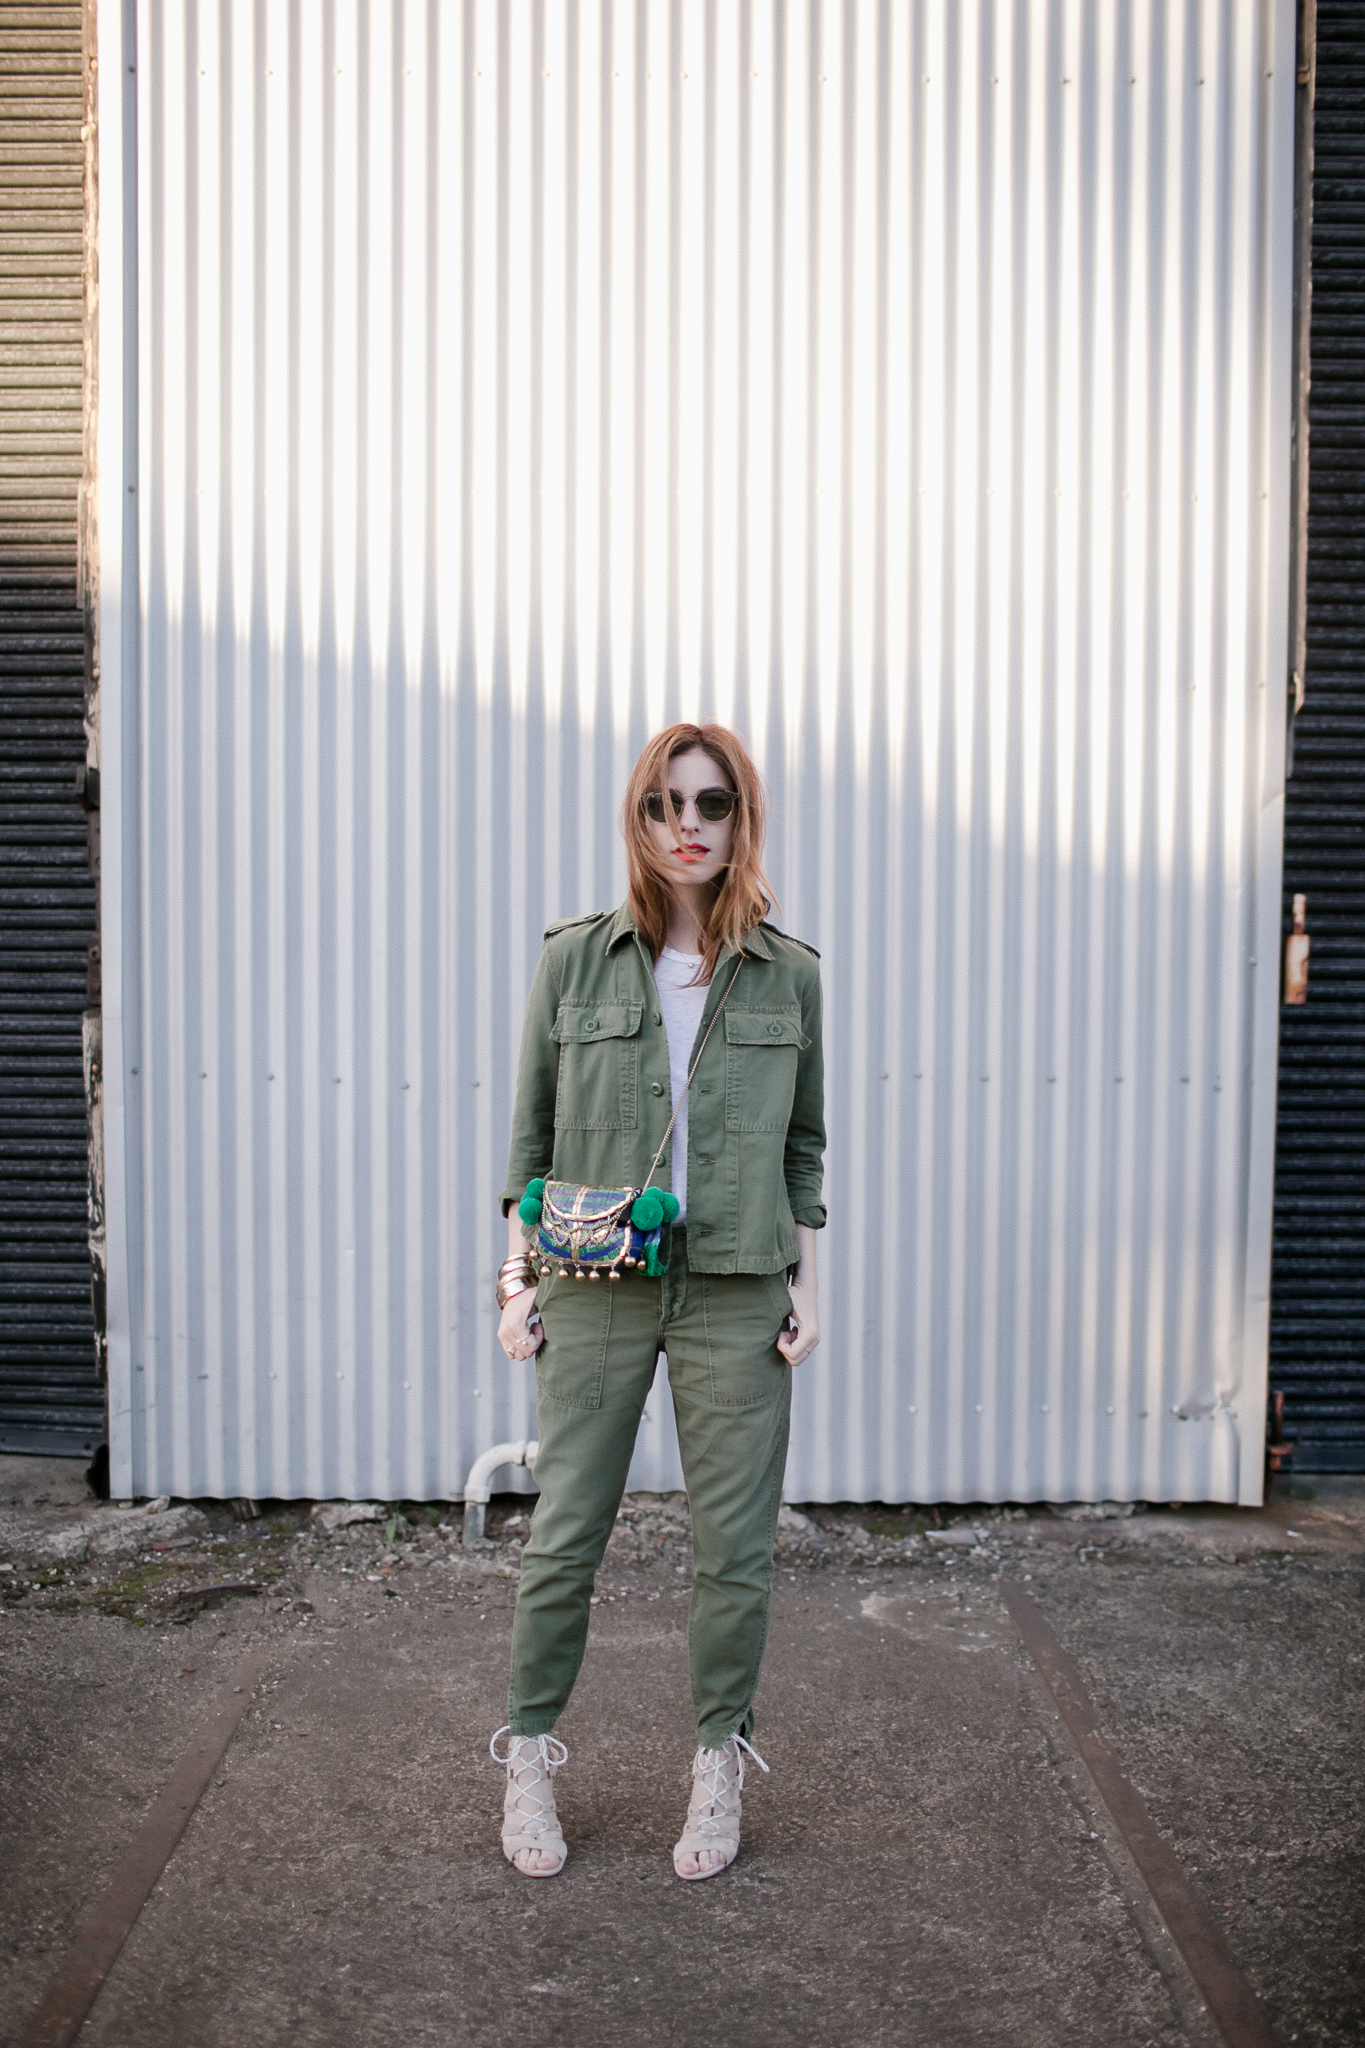 anna_e_cottrell_eldridge_edit_tulip_louise_fashion_blogger_australia_mercedes_benz_fashion_week_sydney_mallory_berry_mgb_photo_amo_army_green_outfit_redhead_leisure_society_sunglasses_orange_lip_love_binetti_handbag_1.jpg